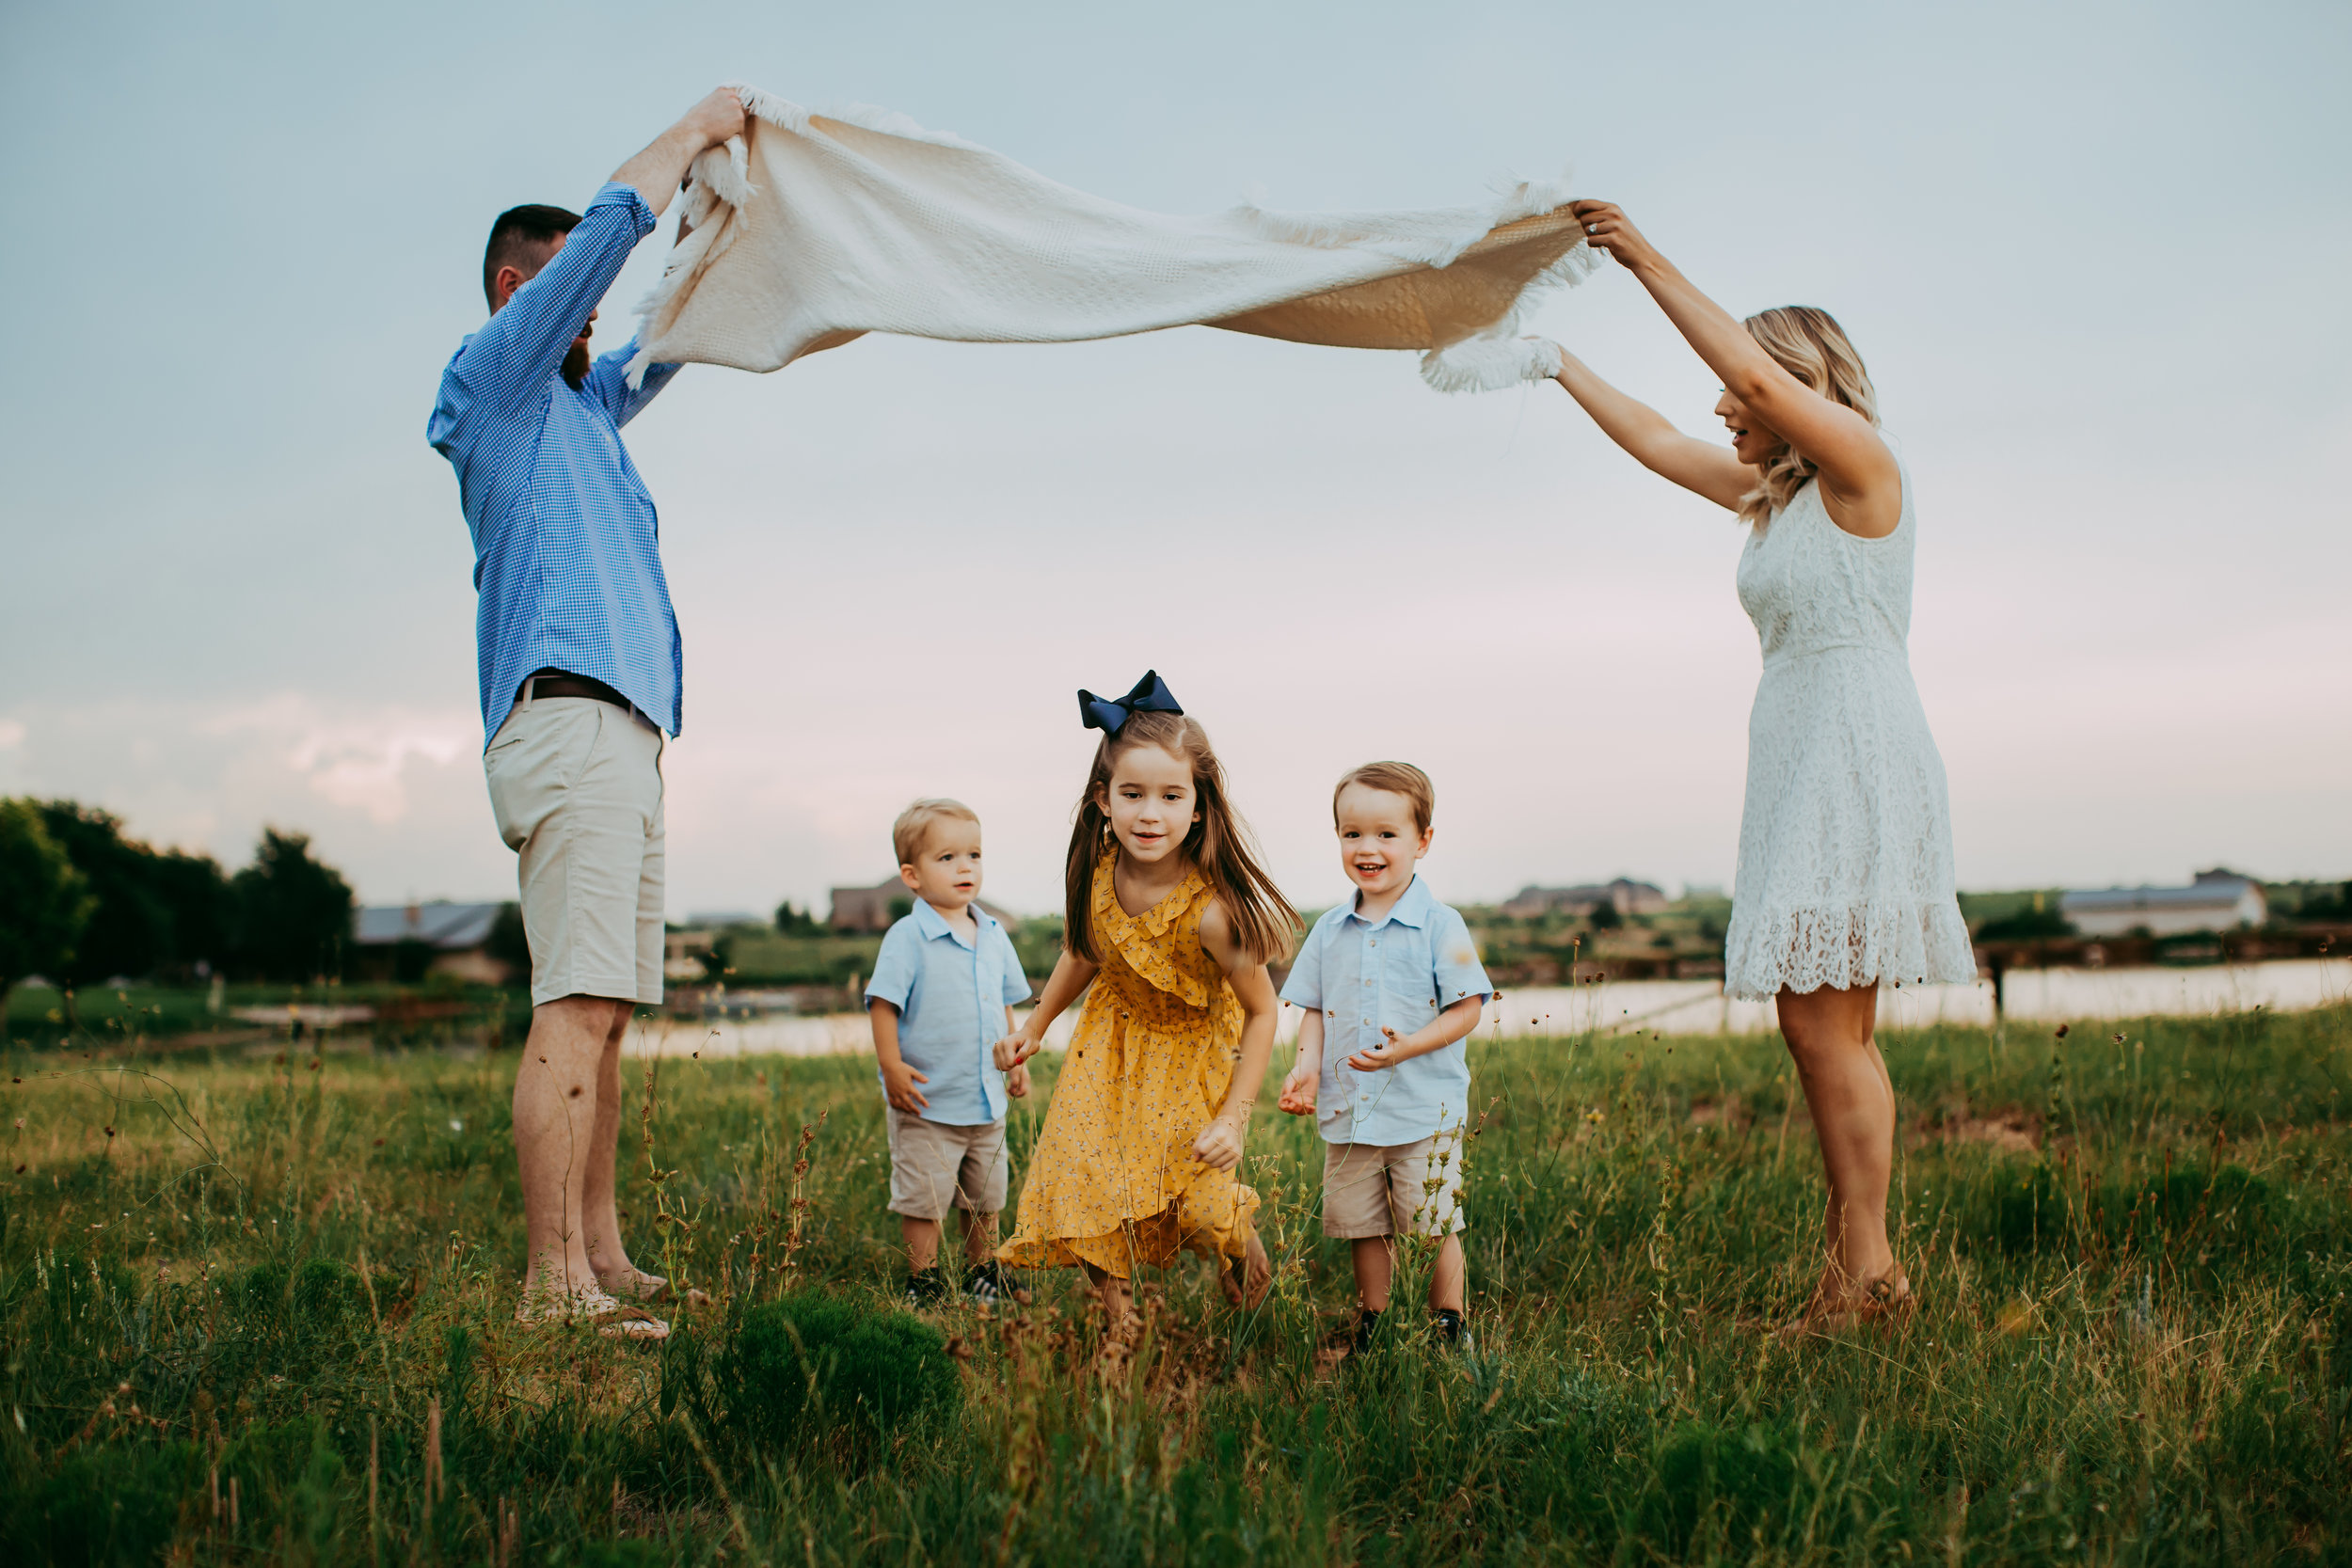 Kids running under picnic blanket wearing blue and yellow #tealawardphotography #texasfamilyphotographer #amarillophotographer #amarillofamilyphotographer #lifestylephotography #emotionalphotography #familyphotosoot #family #lovingsiblings #purejoy #familyphotos #familyphotographer #greatoutdoors #naturalfamilyinteraction